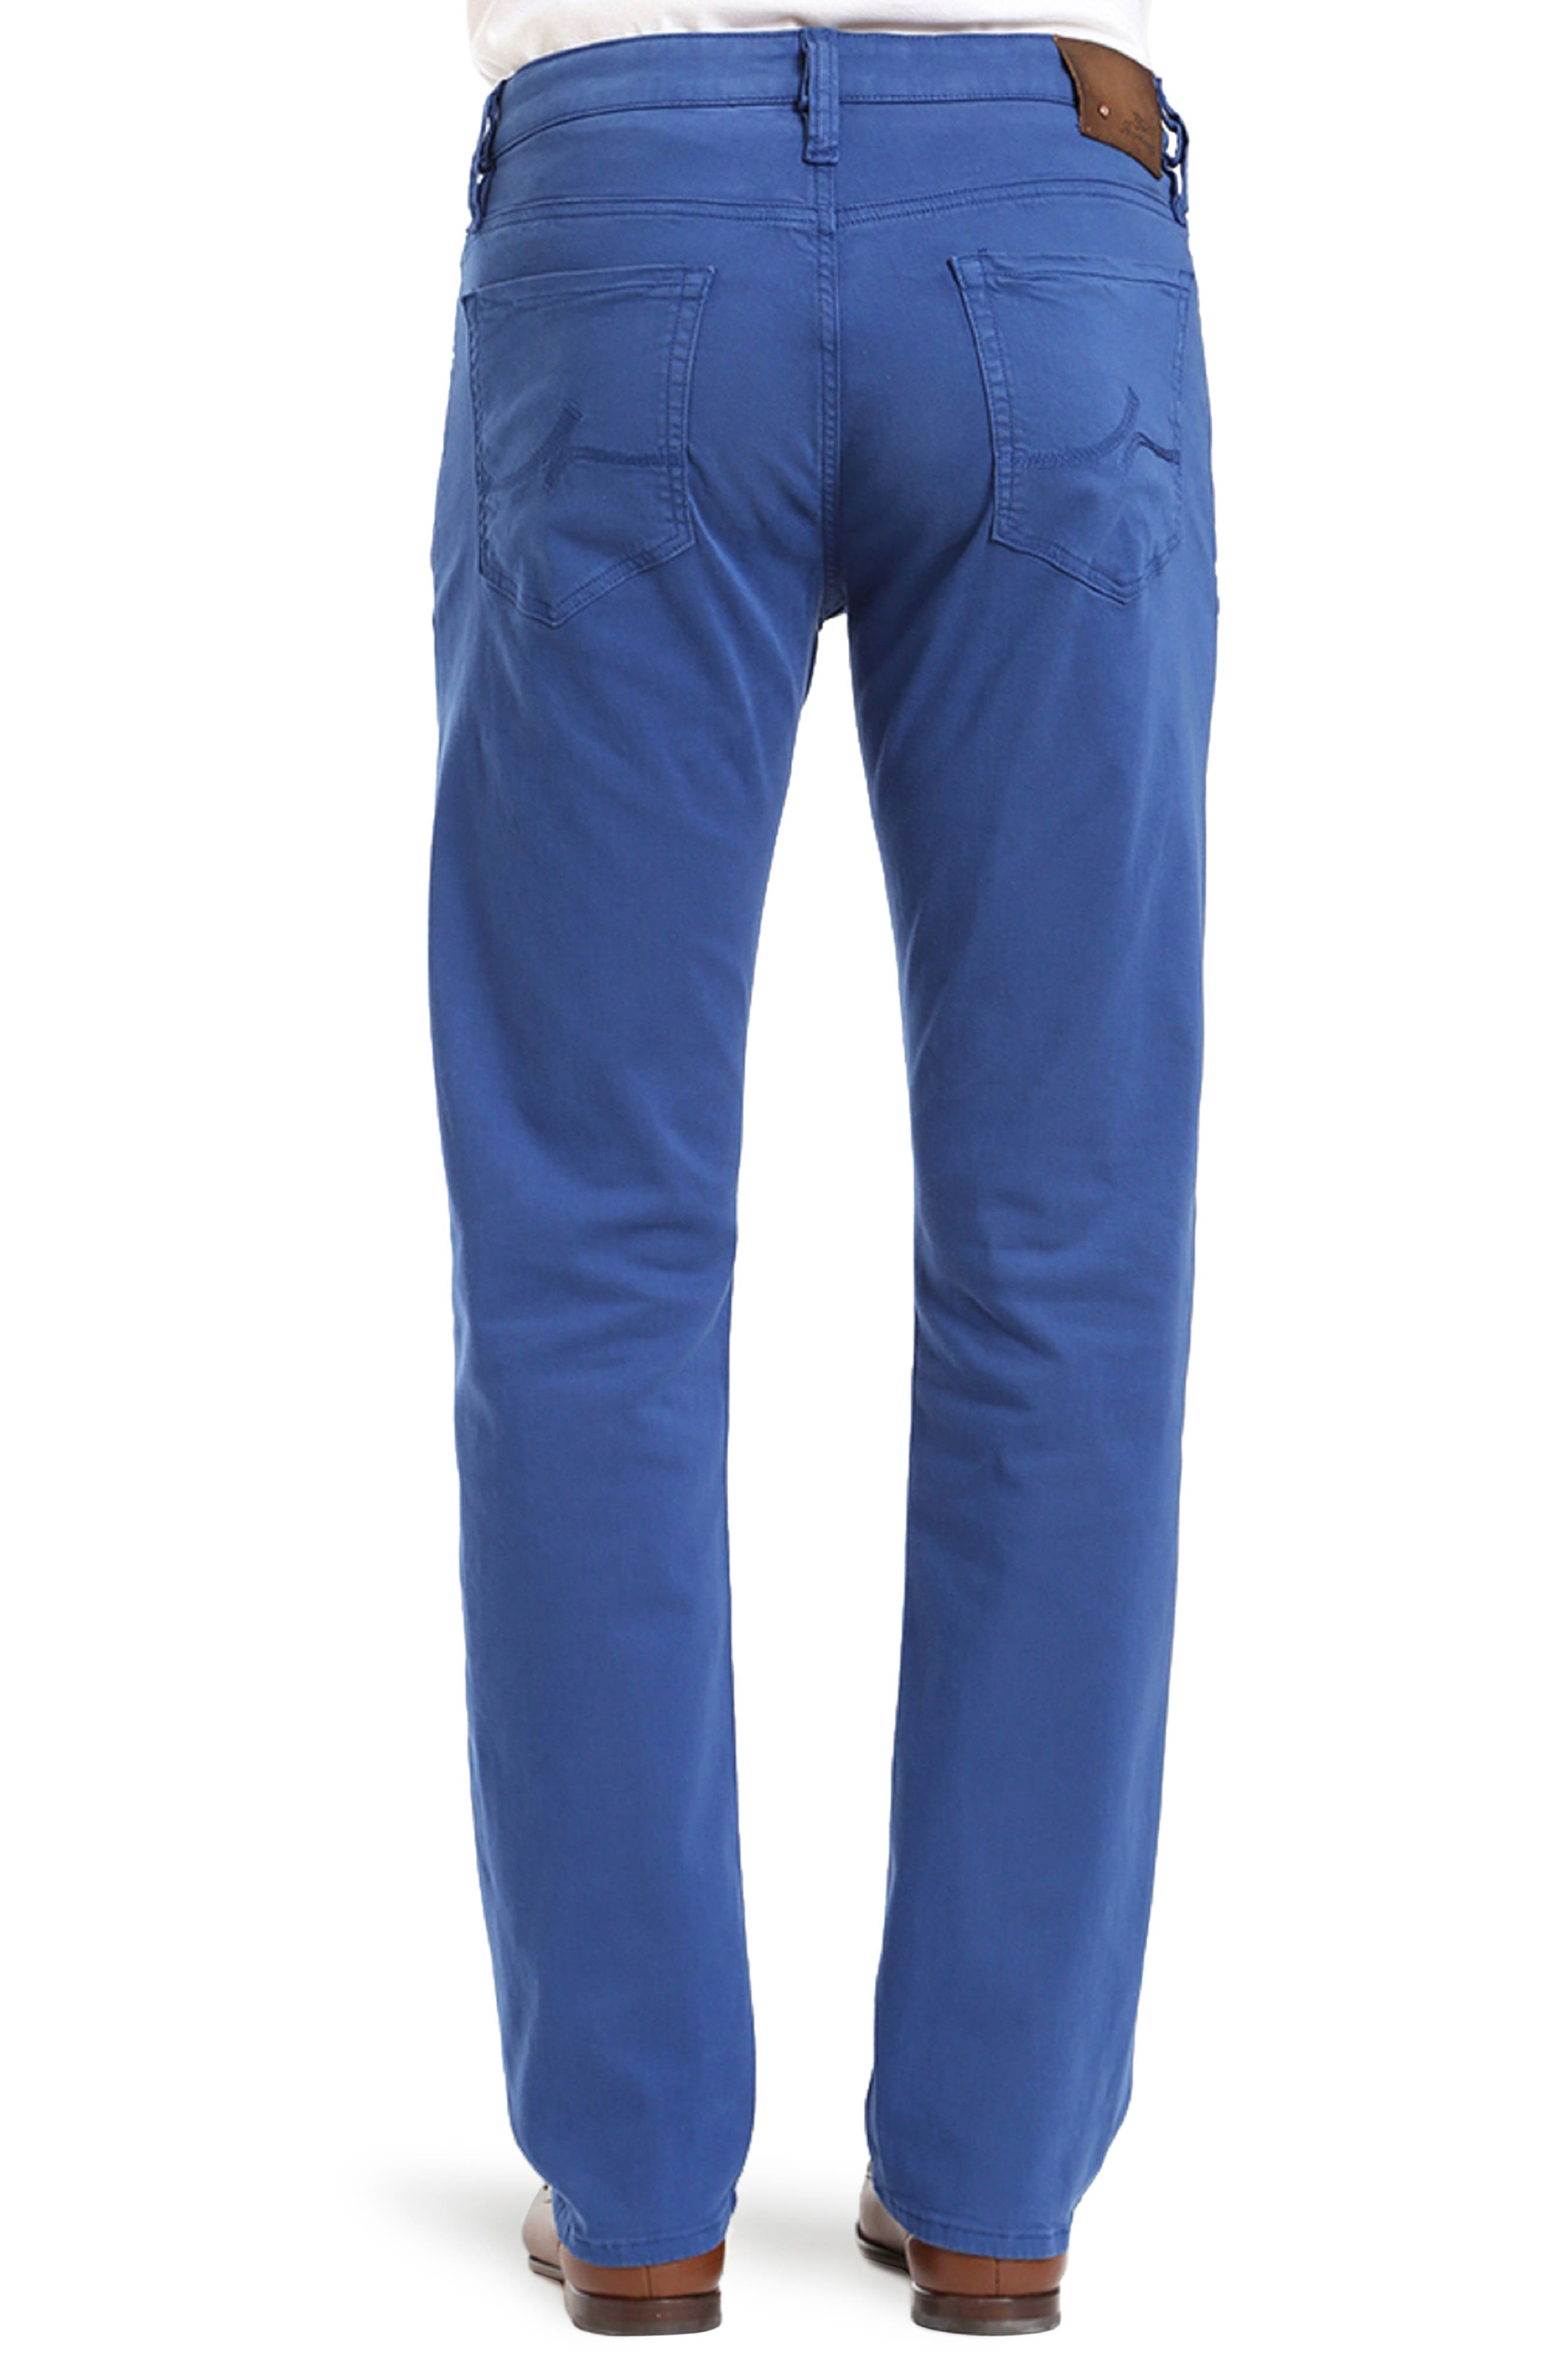 Courage Straight Leg Twill Pants,                             Alternate thumbnail 2, color,                             BLUE